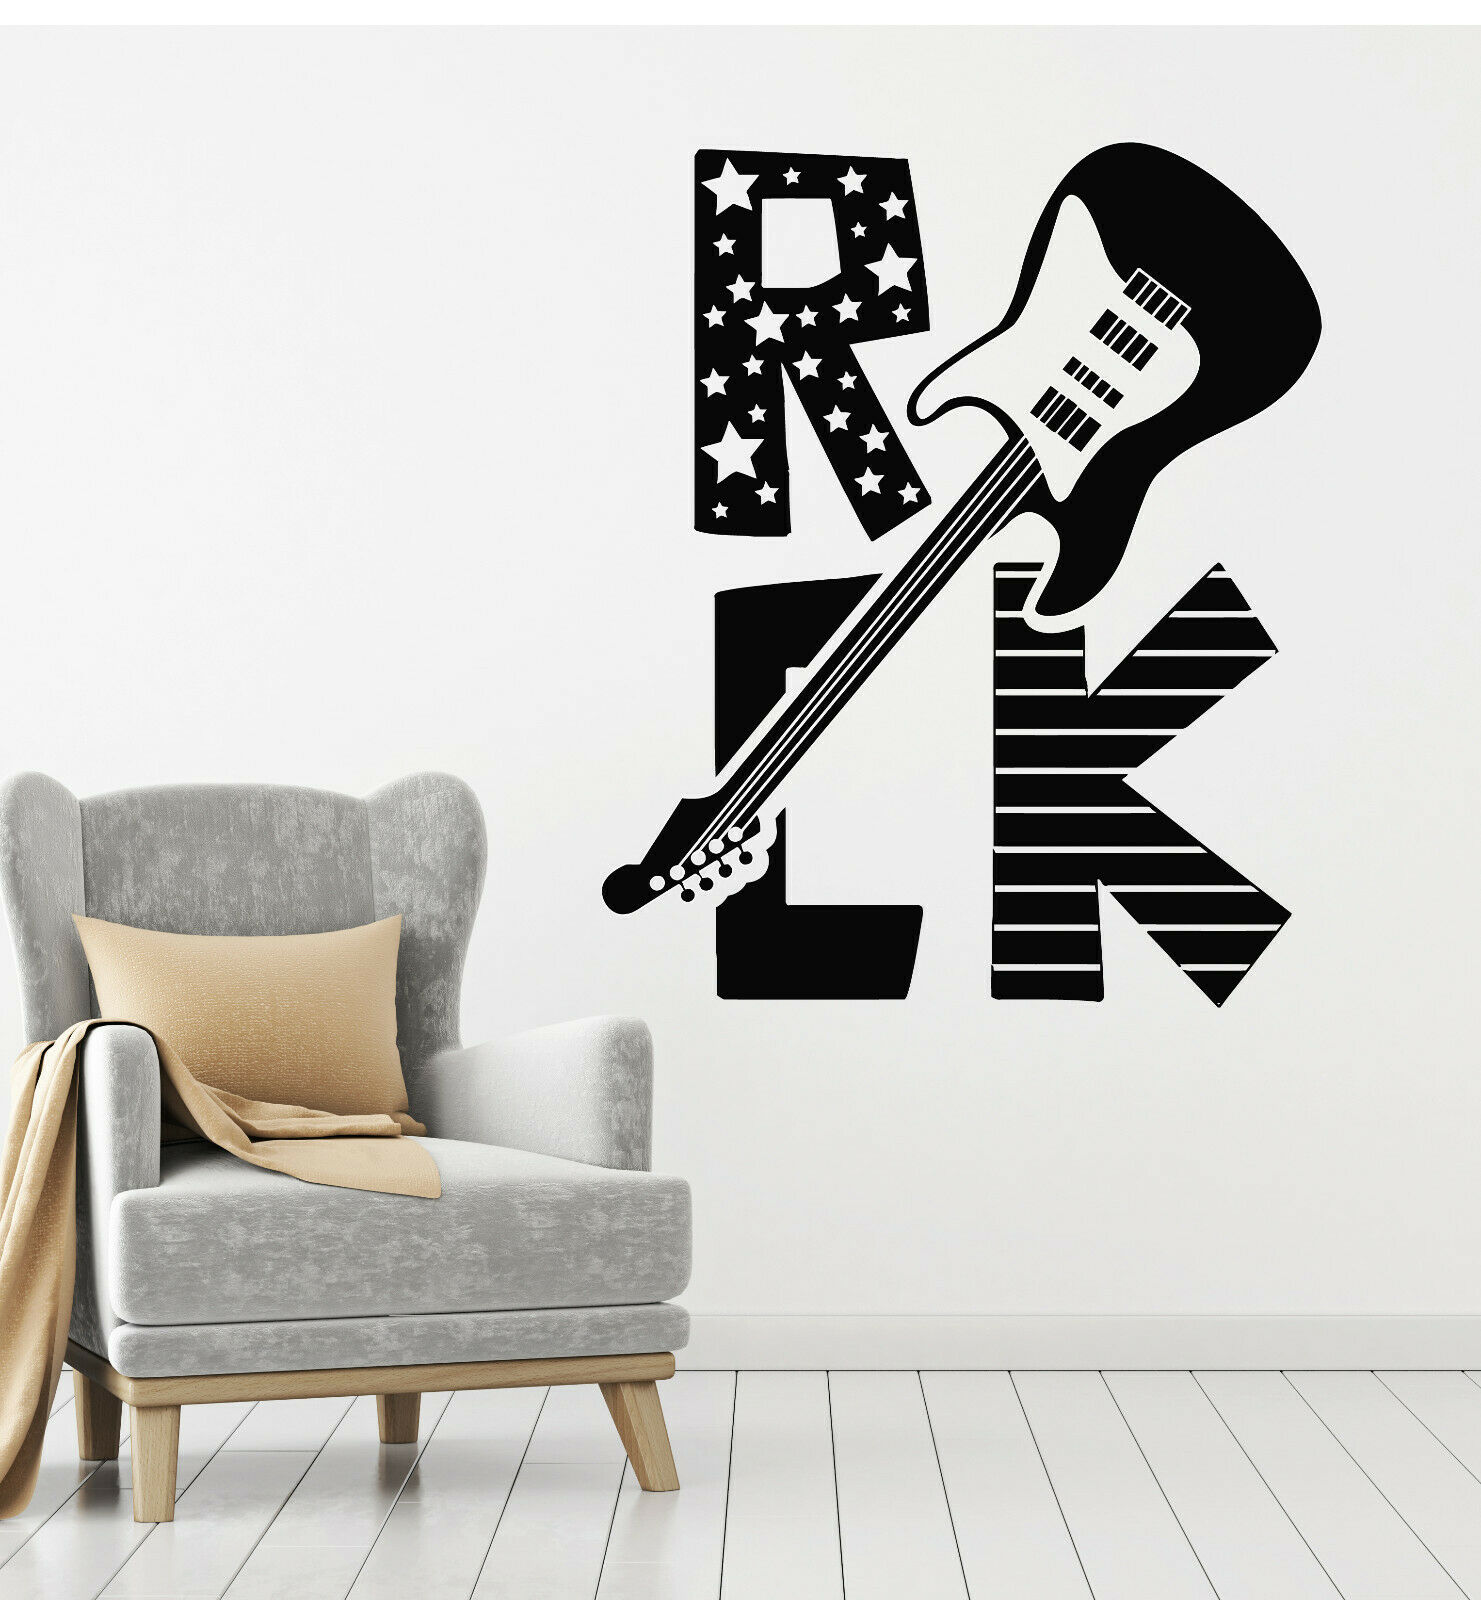 Vinyl Wall Decal Electric Guitar Music Rock Words Forever Free Stickers (g1206)